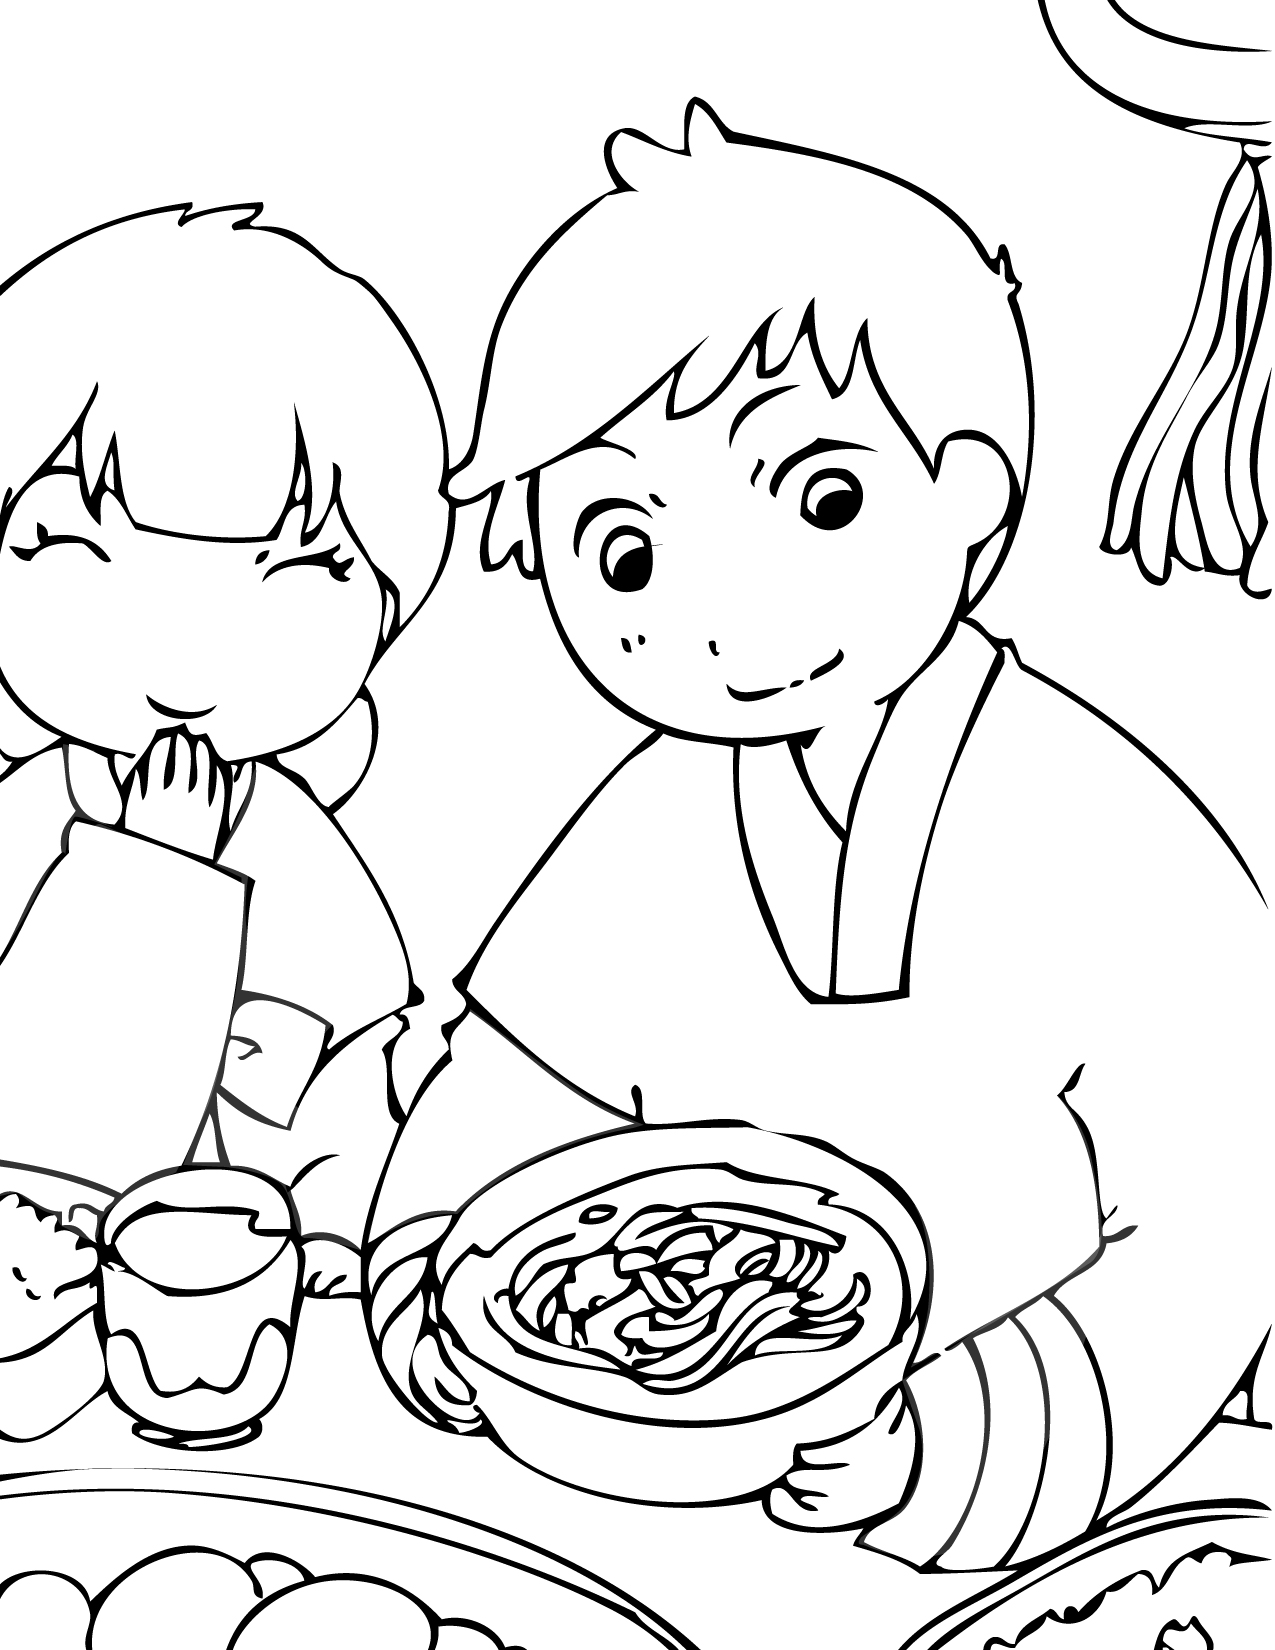 Chulseok Coloring Page